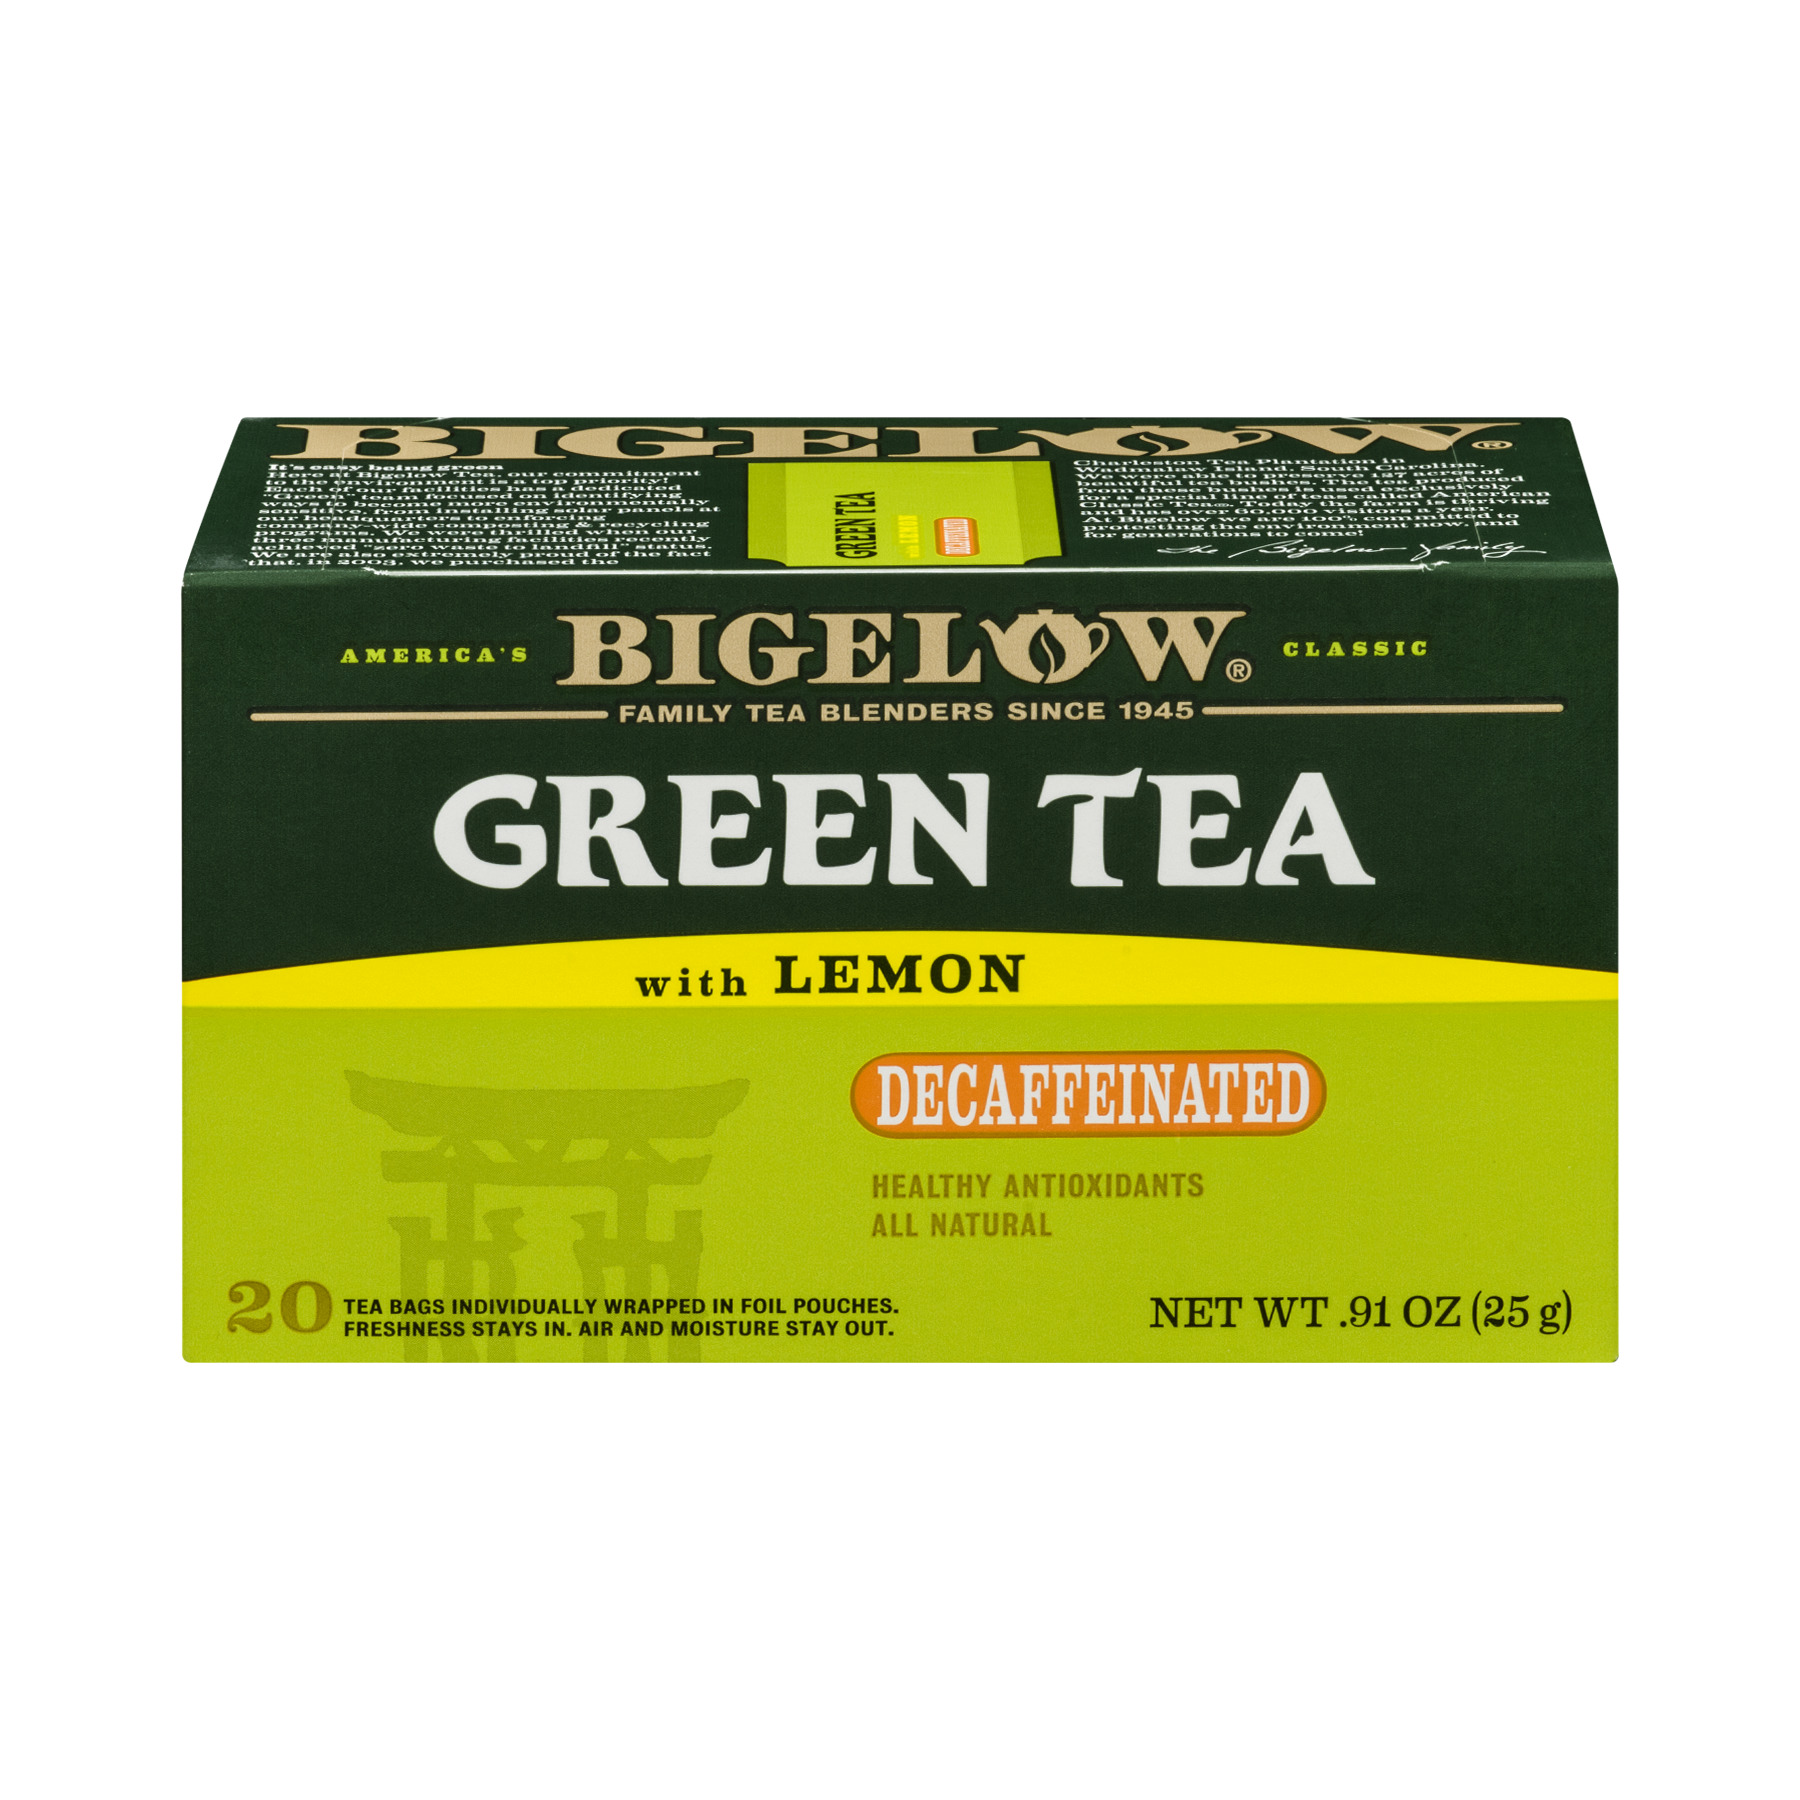 Bigelow Green Tea Decaffeinated With Lemon - 20 CT20.0 CT